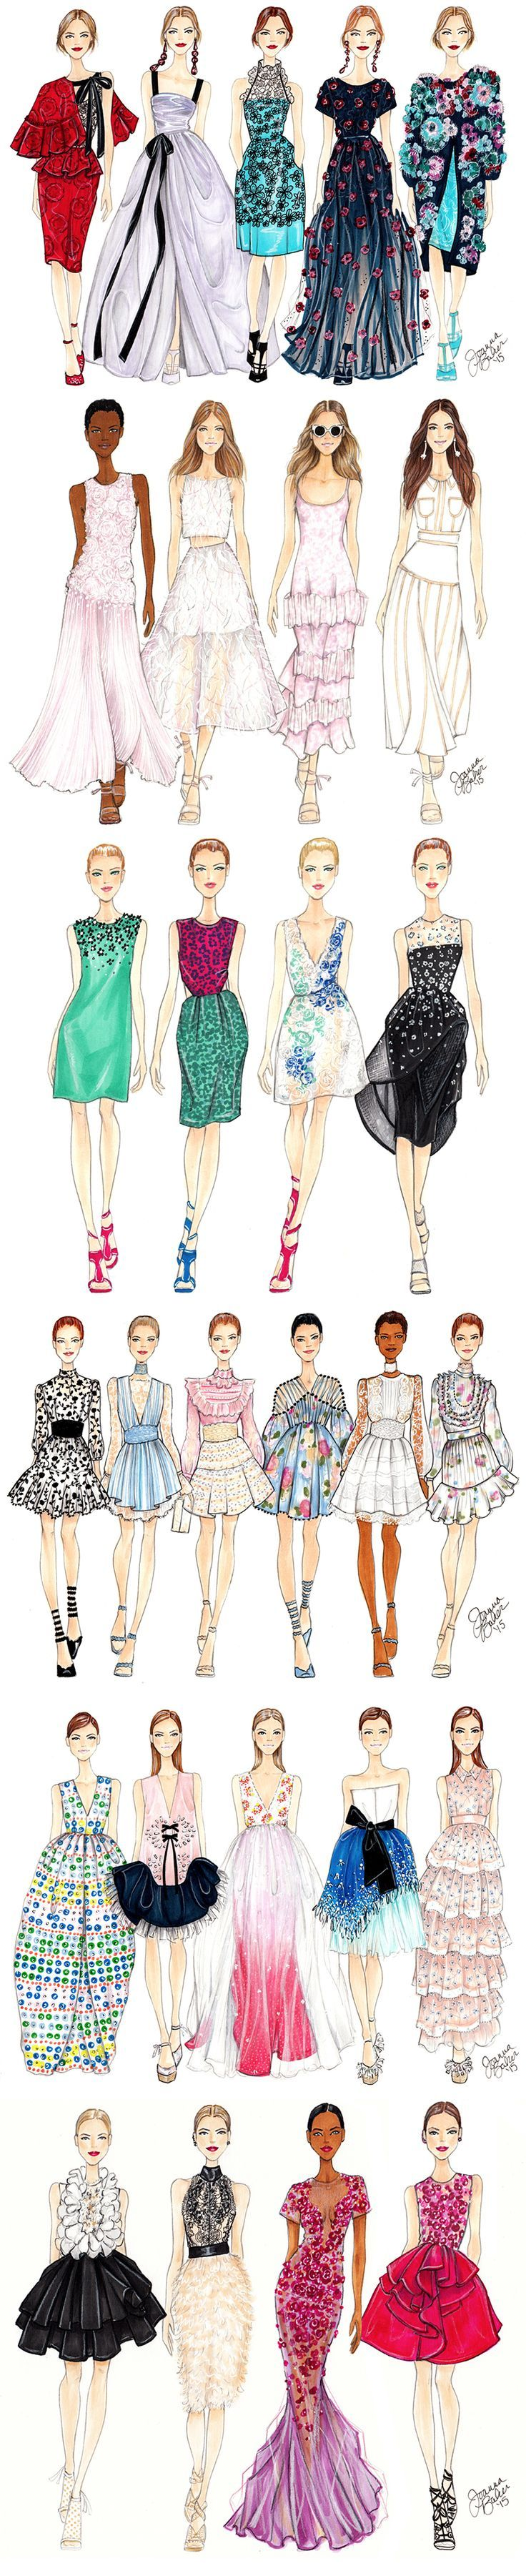 cool The Blog | An illustrated blog of personal artwork, daily musings, and inspirations. by http://www.polyvorebydana.us/fashion-sketches/the-blog-an-illustrated-blog-of-personal-artwork-daily-musings-and-inspirations/